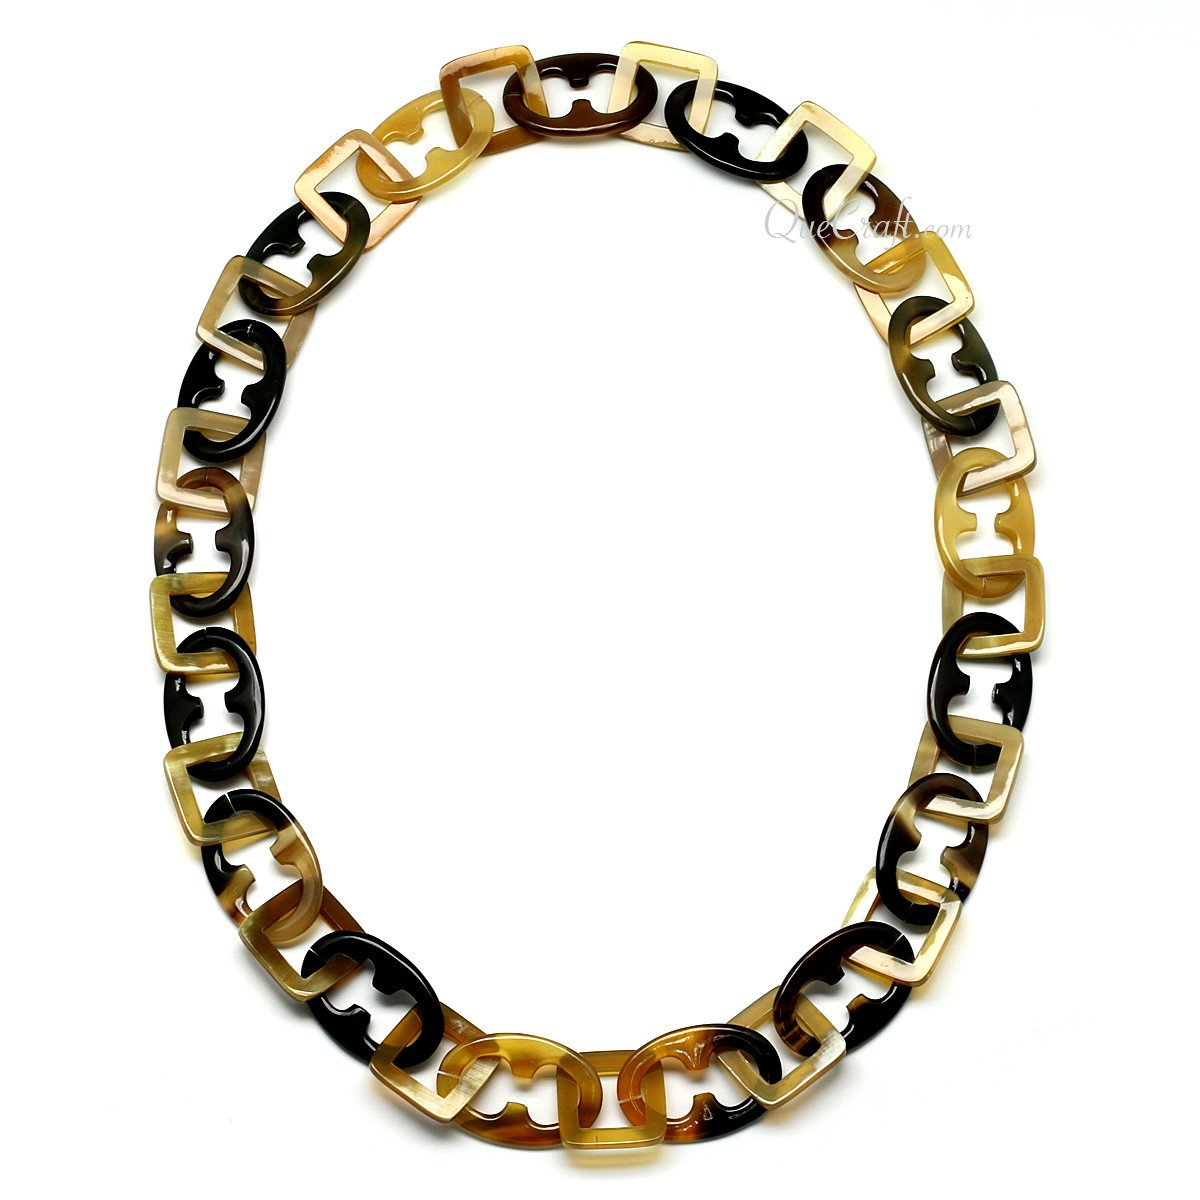 Horn Chain Necklace #11143 - HORN.JEWELRY by QueCraft